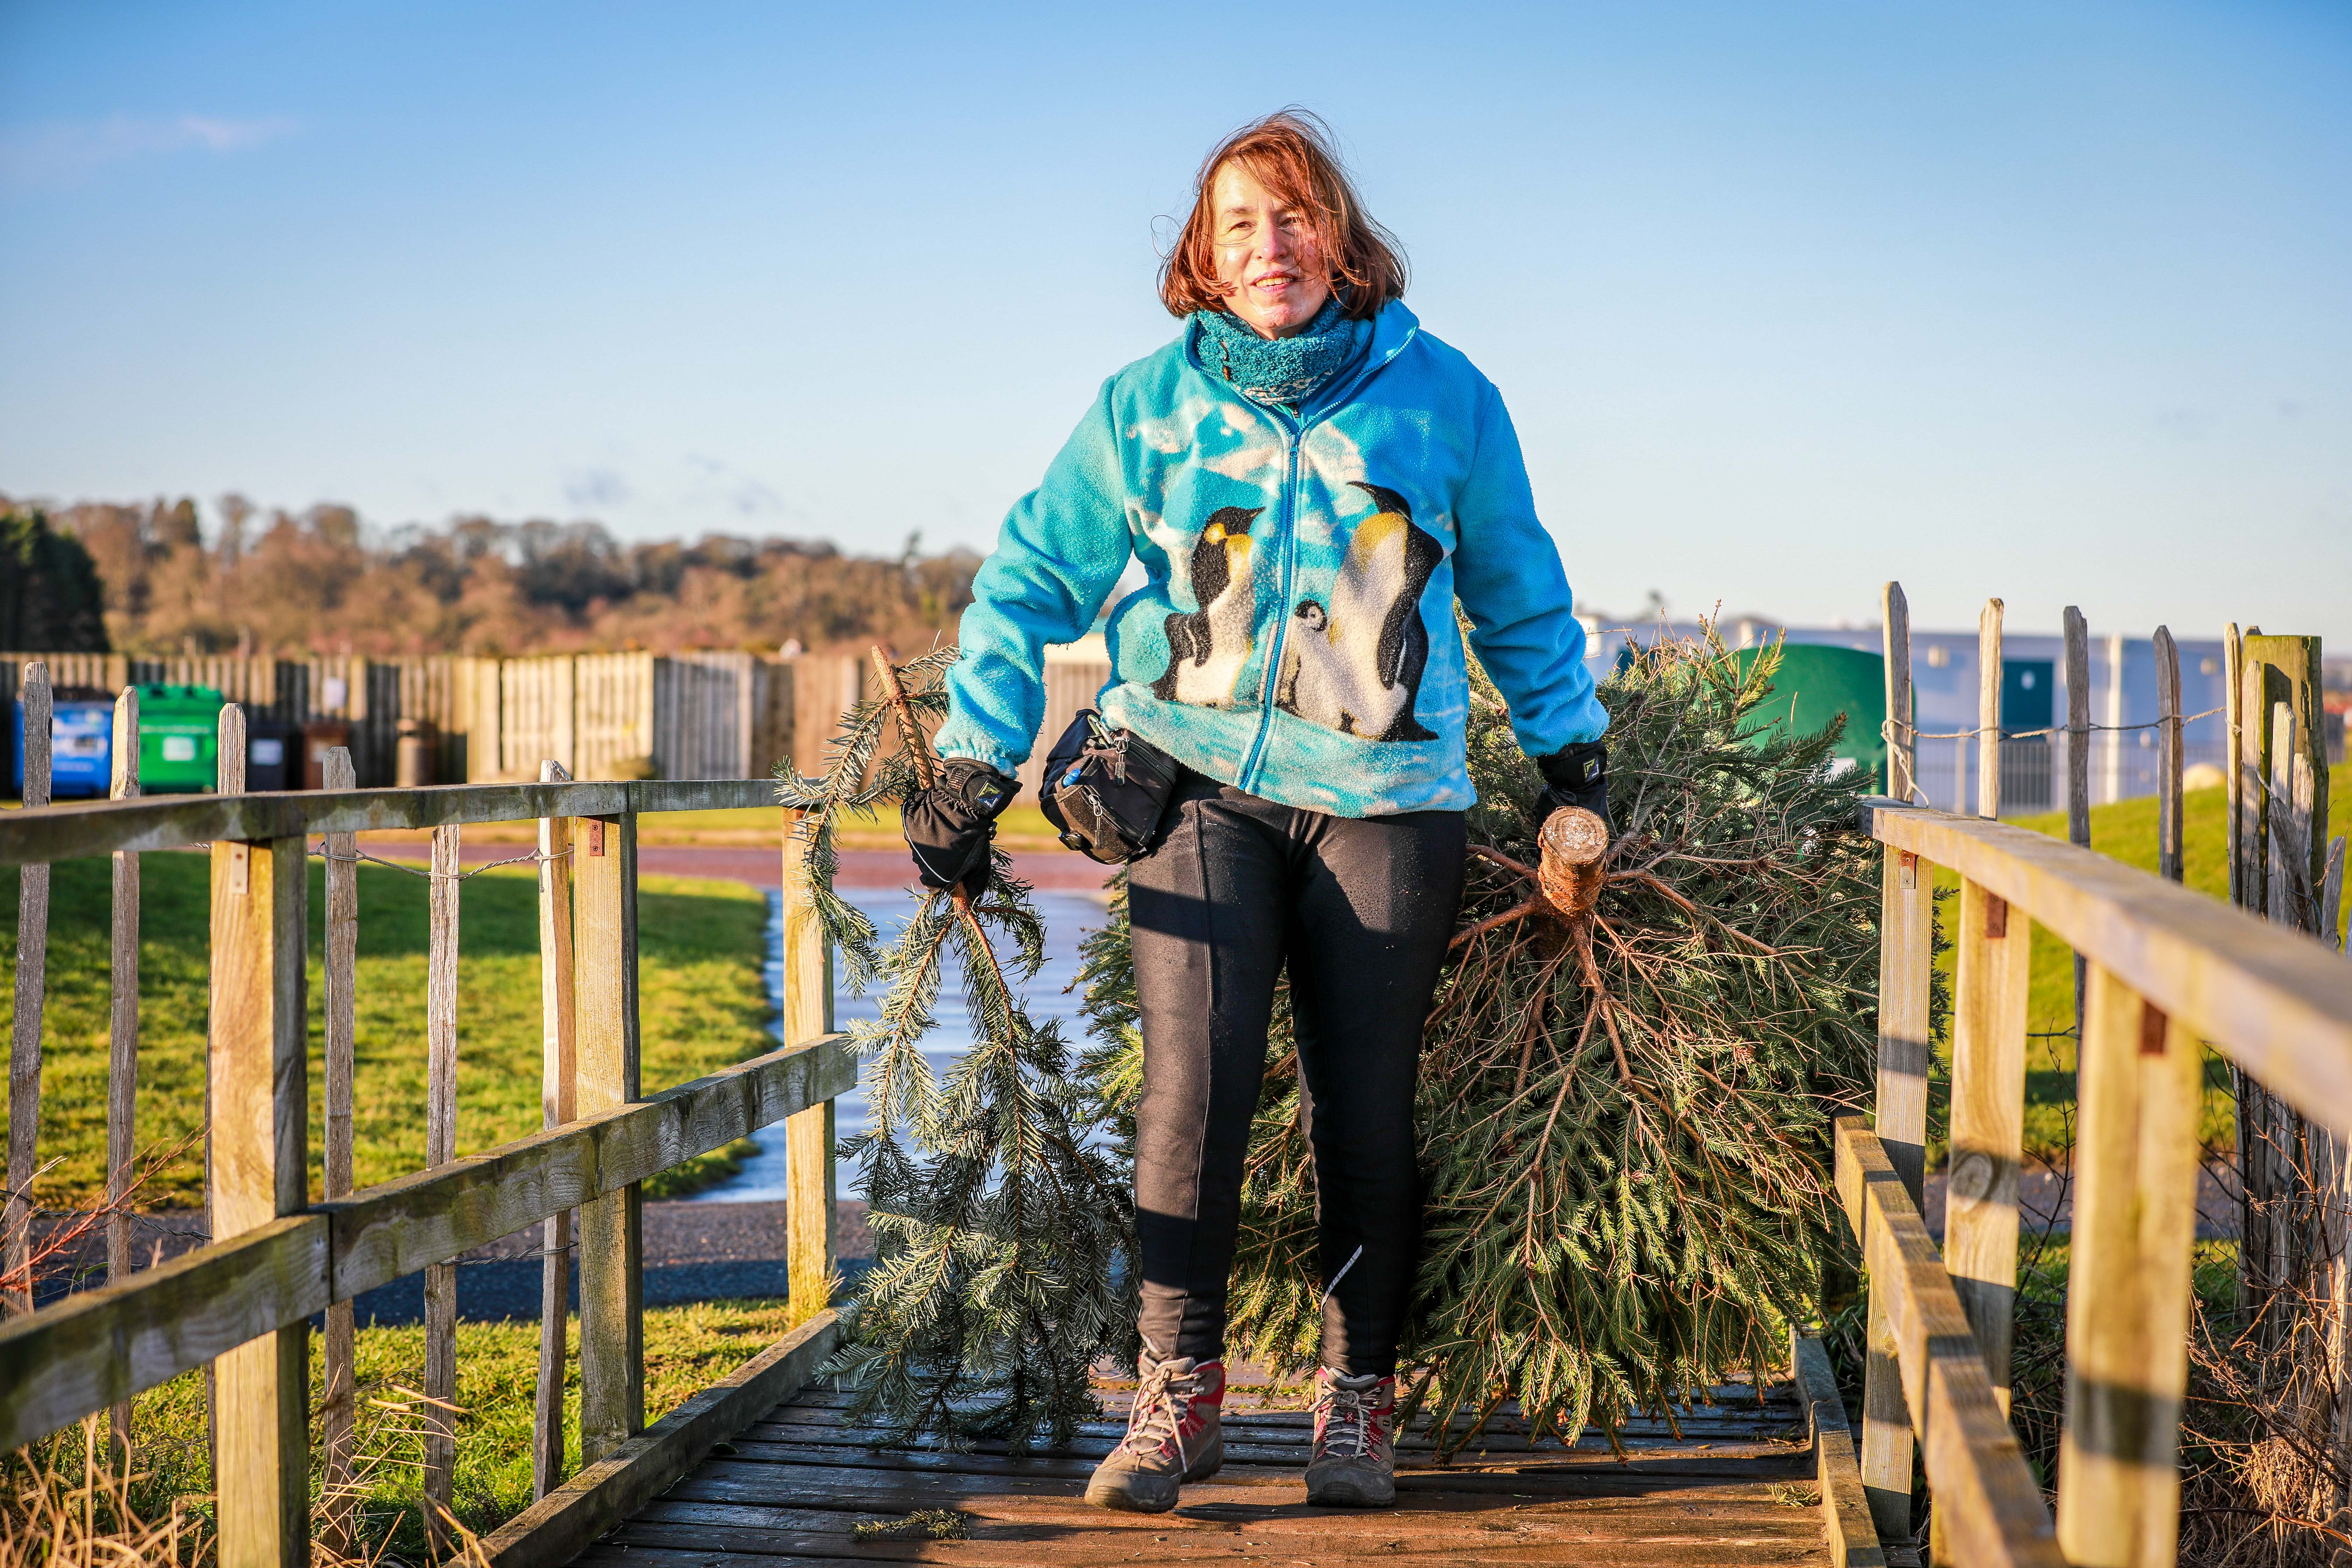 More than 900 Christmas tree were donated to help save the sand dunes from erosion.